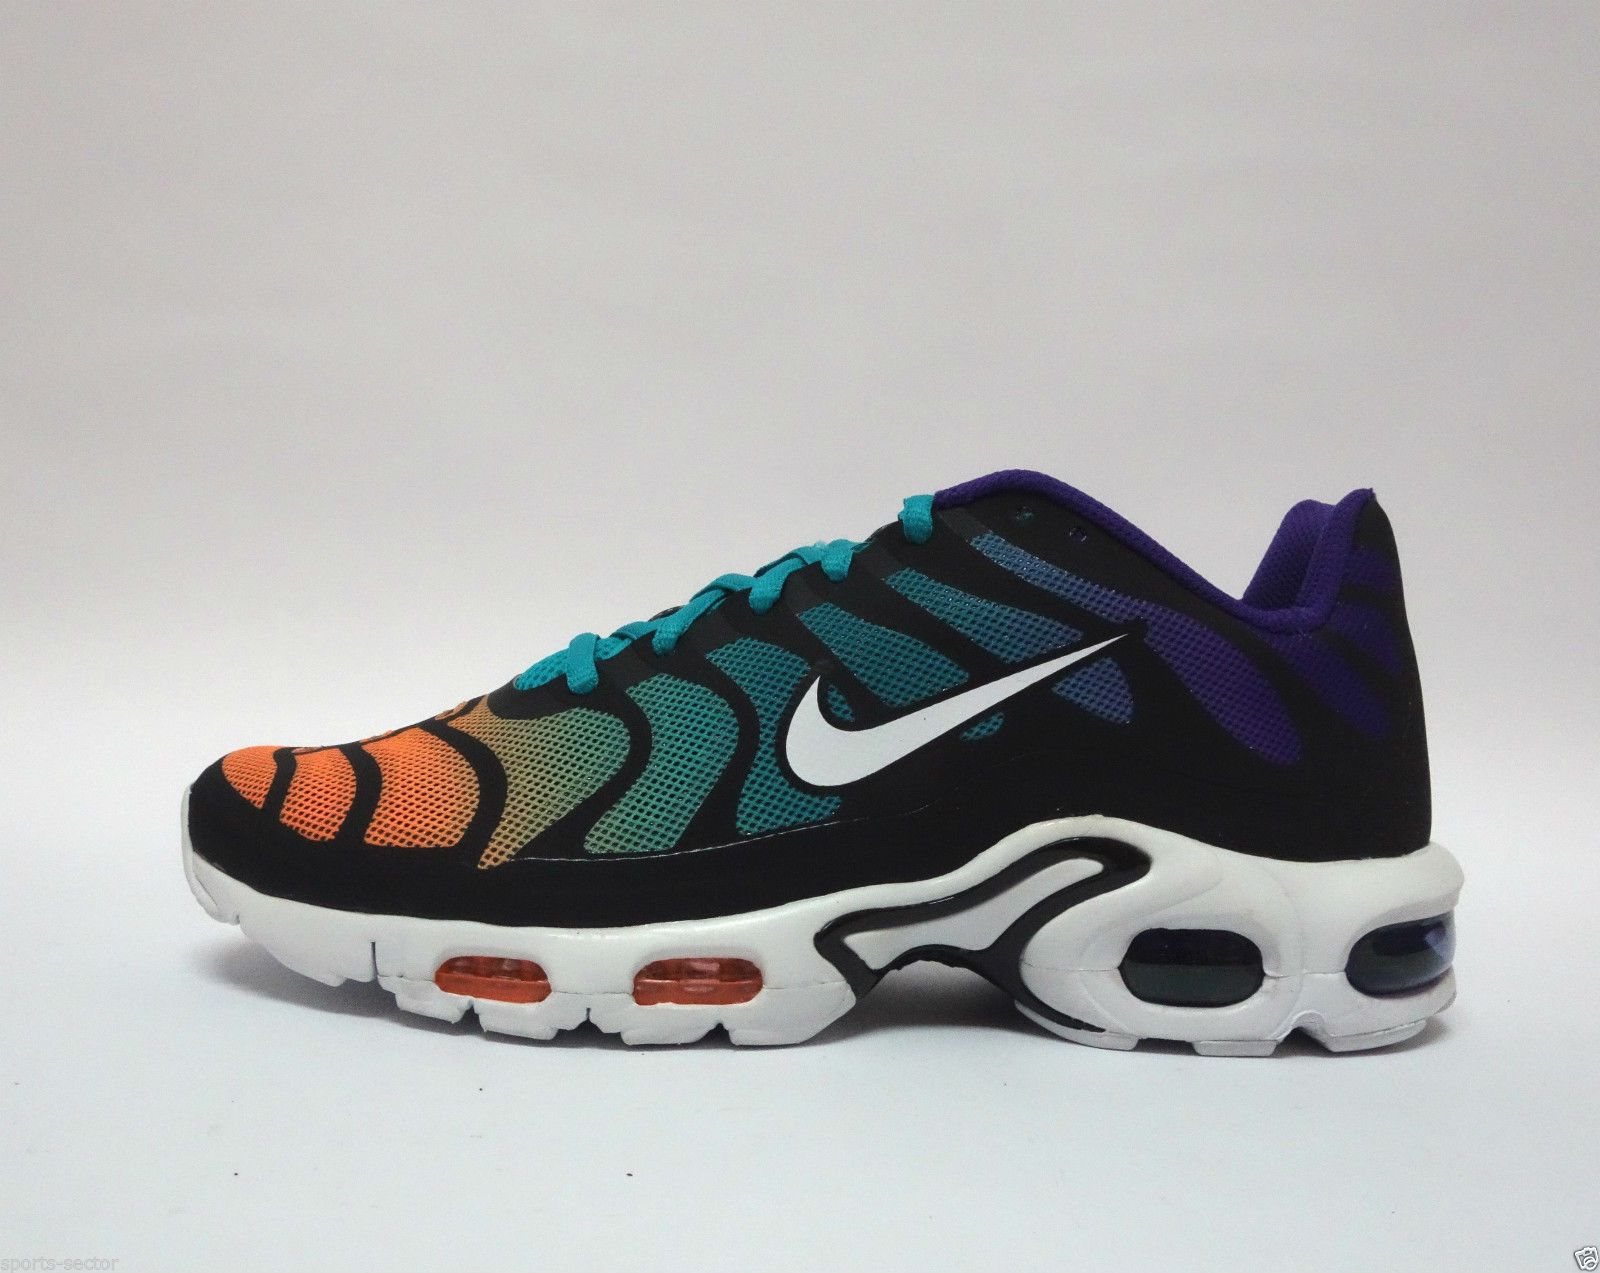 Details about Nike Air Max Plus Hyperfuse TN1 Tuned Mens Trainers Shoes  Turbo Green/White